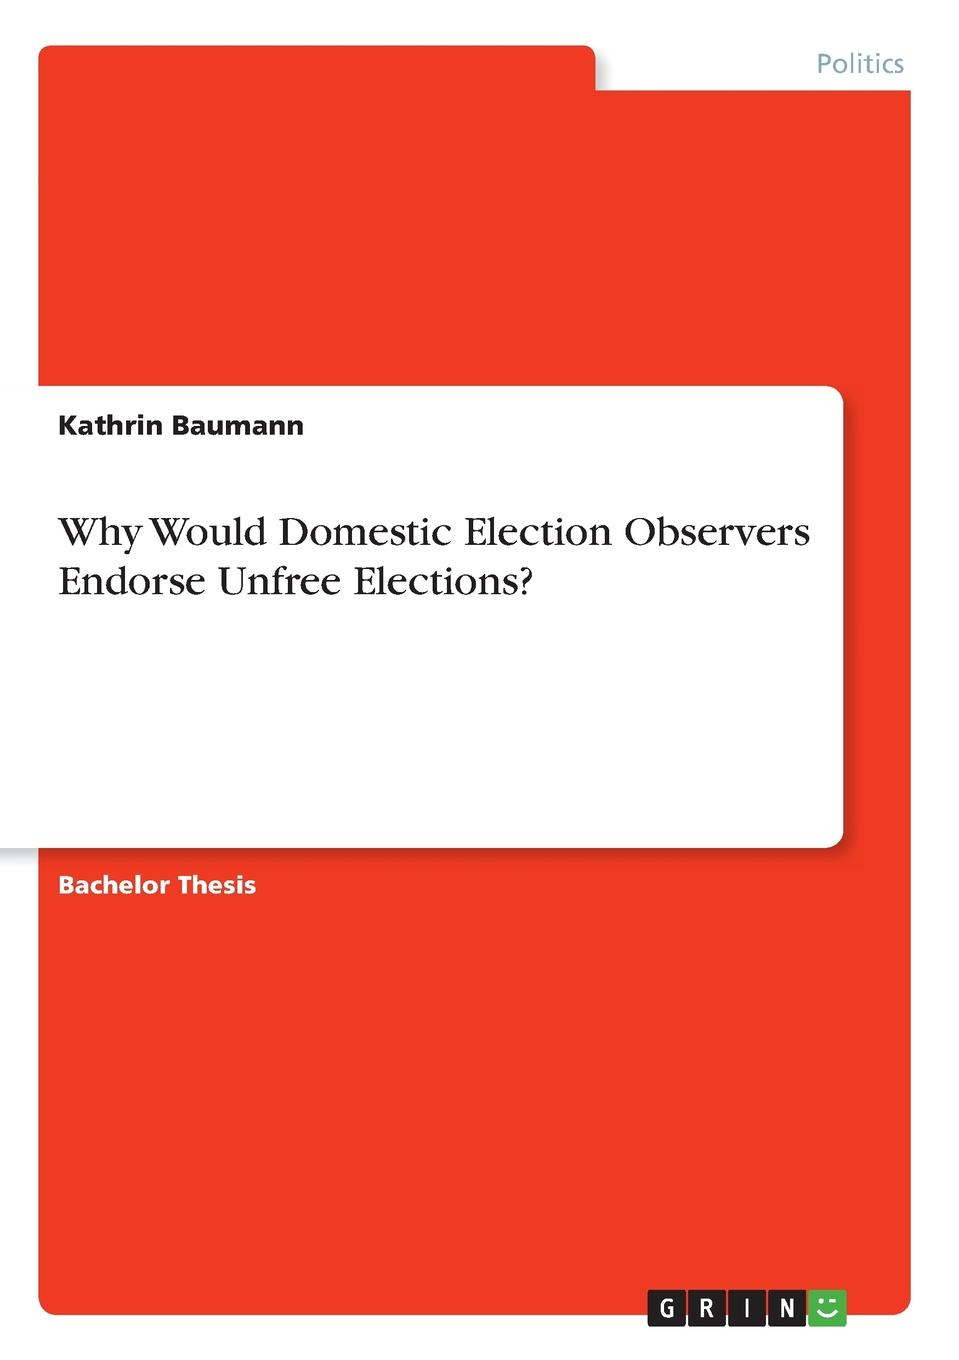 Why Would Domestic Election Observers Endorse Unfree Elections.